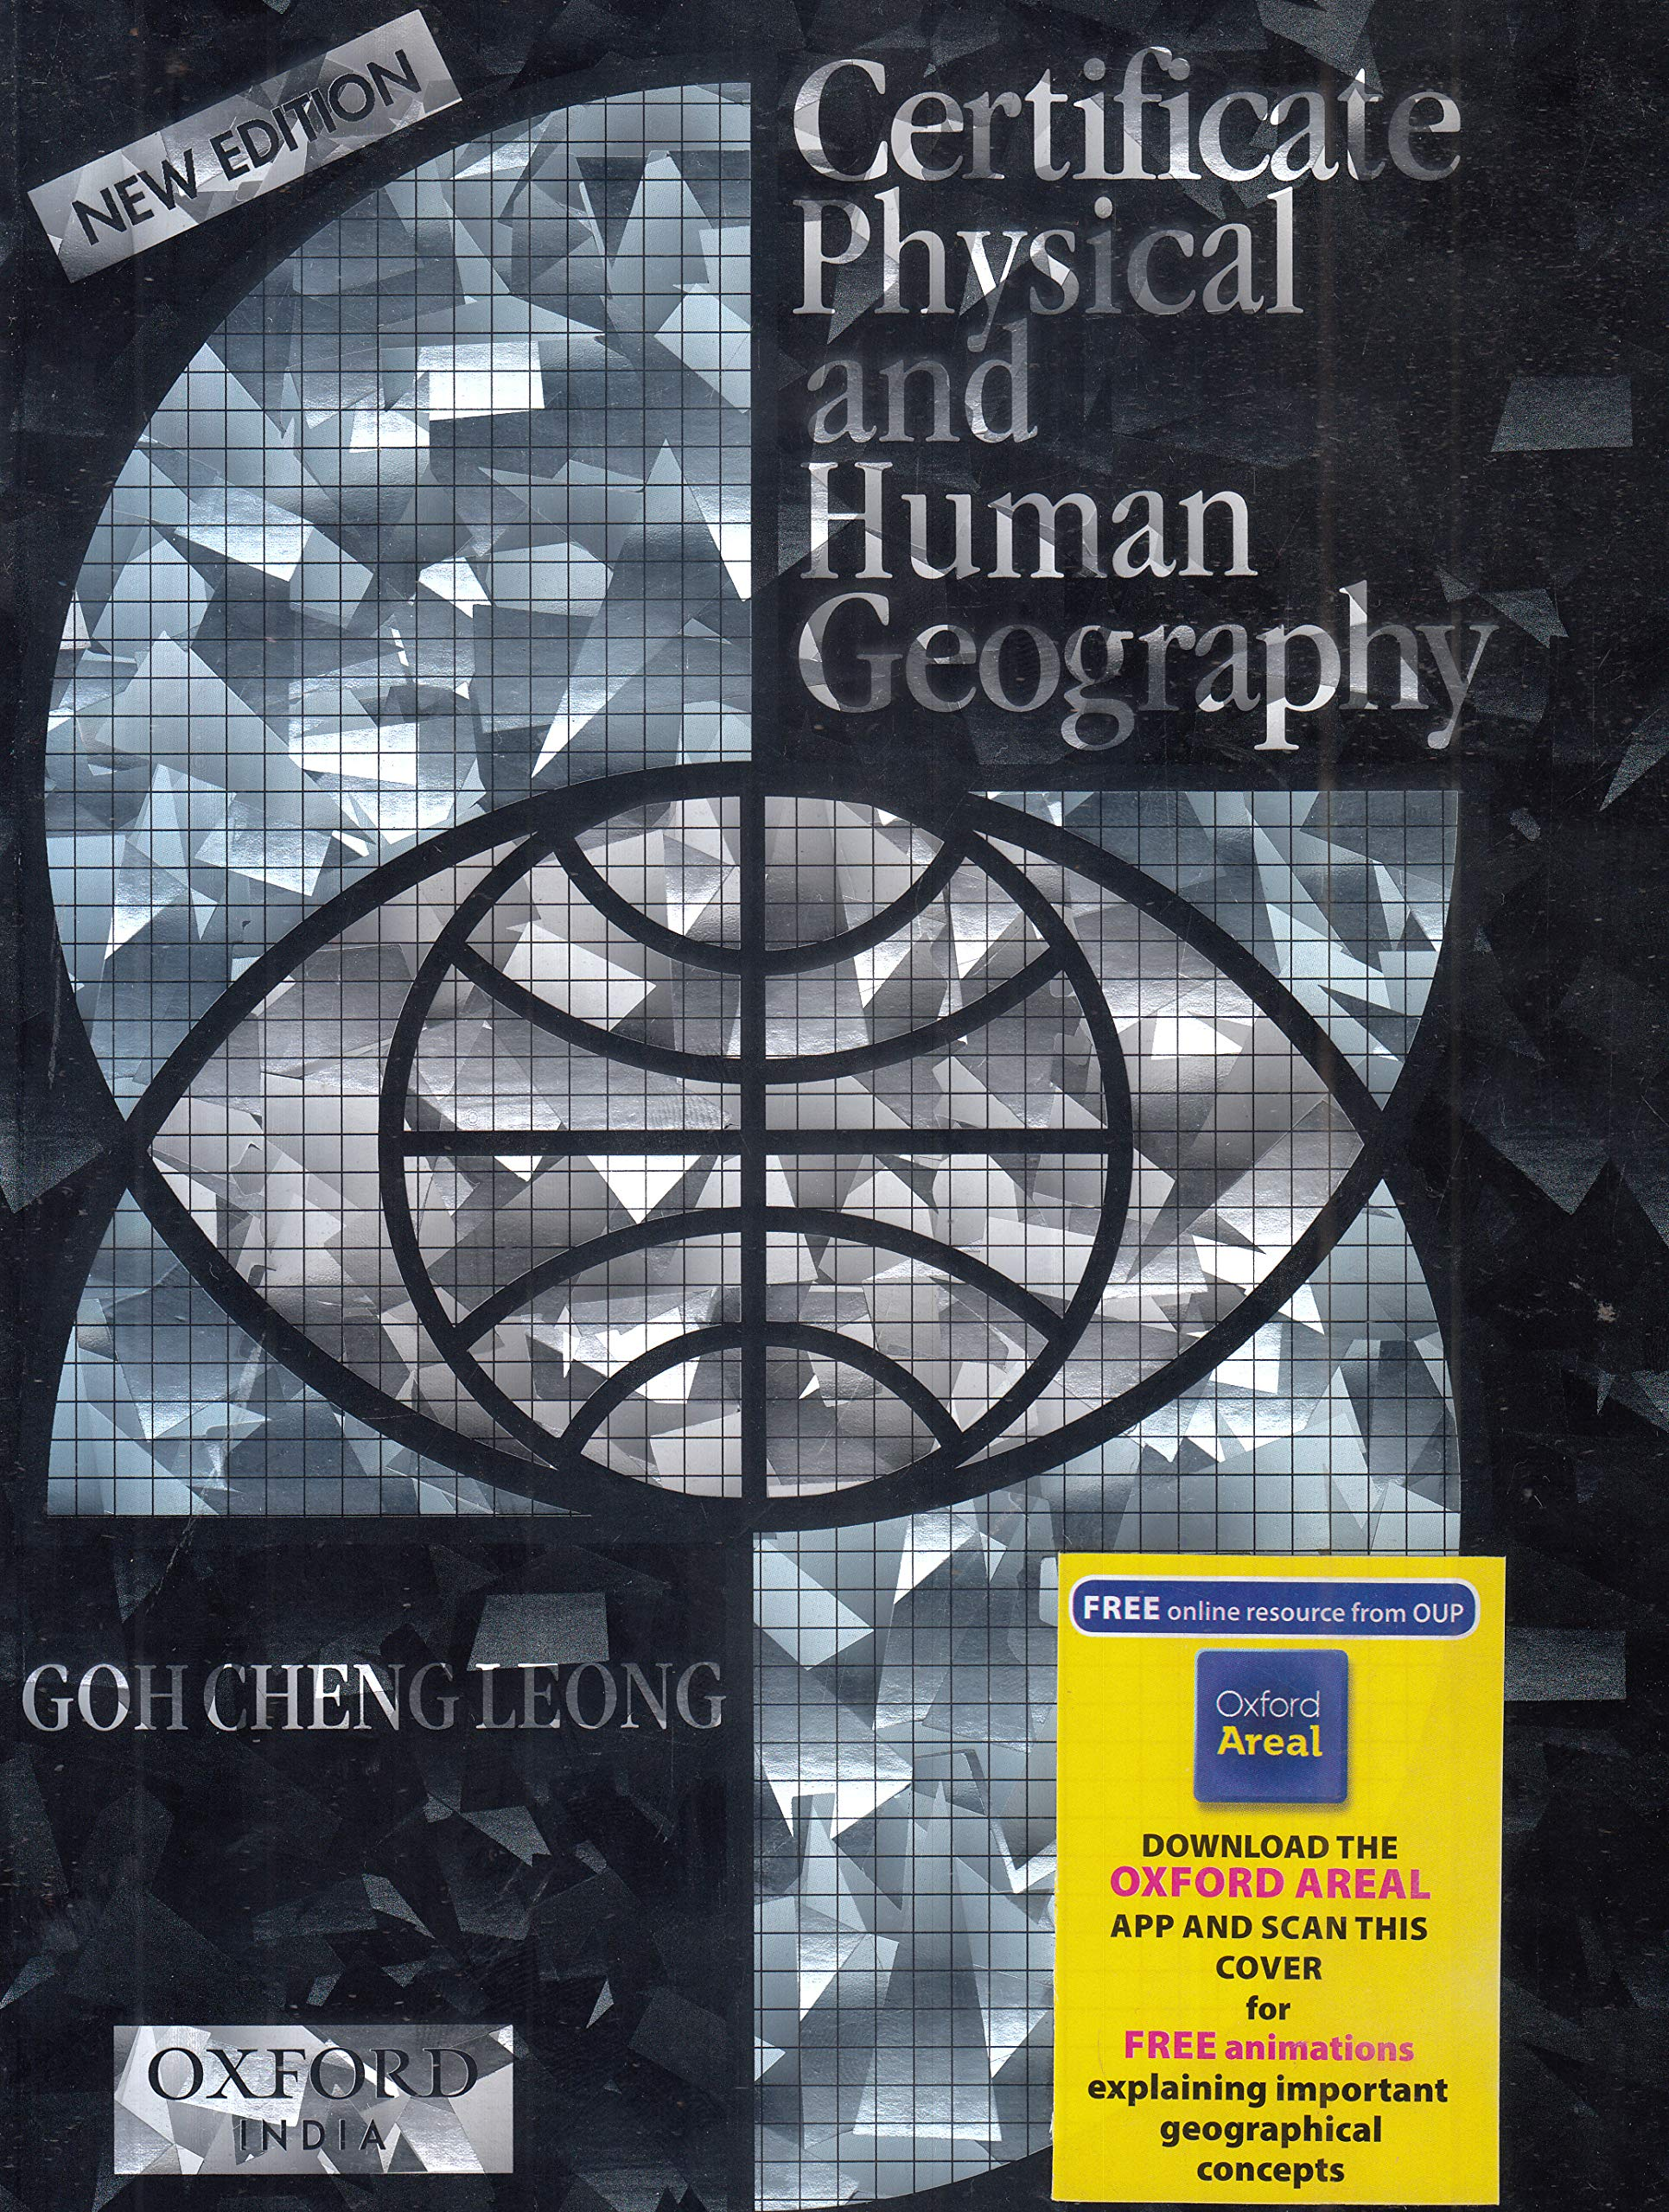 Certificate Physical And Human Geography; Indian Edition by Goh Cheng Leong latest edition